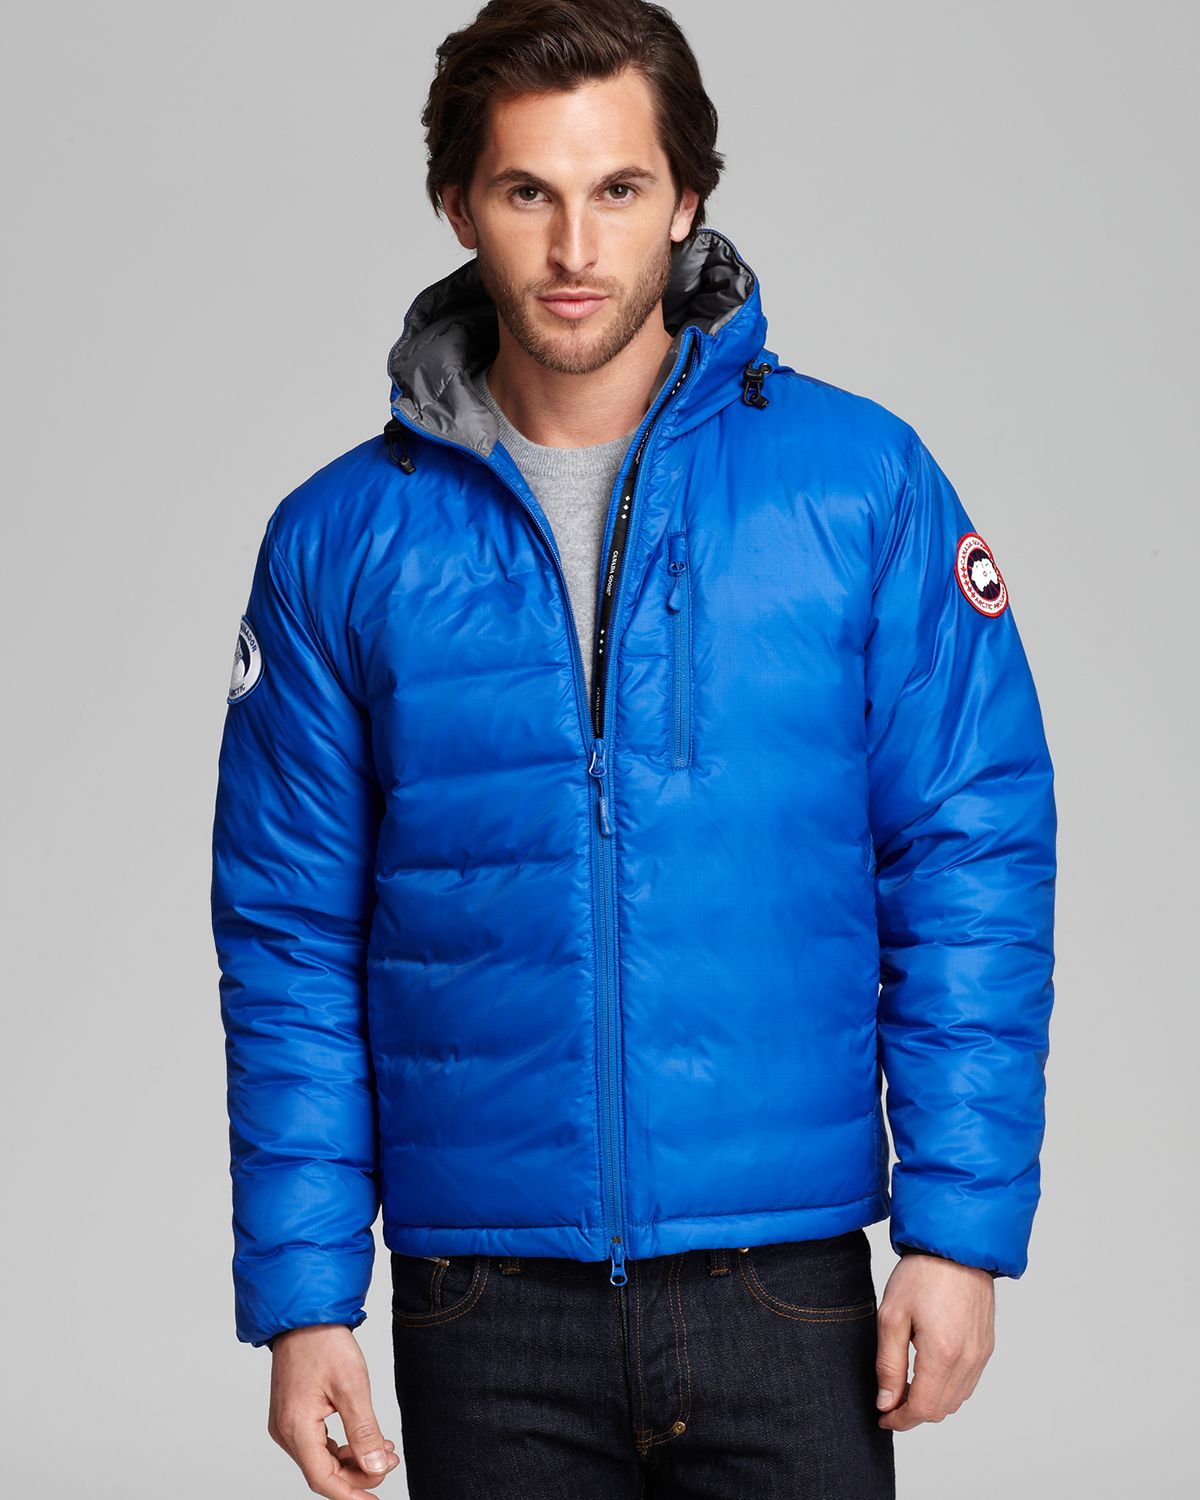 Lyst - Canada Goose Lodge Hoodie Down Jacket in Blue for Men 29fe2eae6